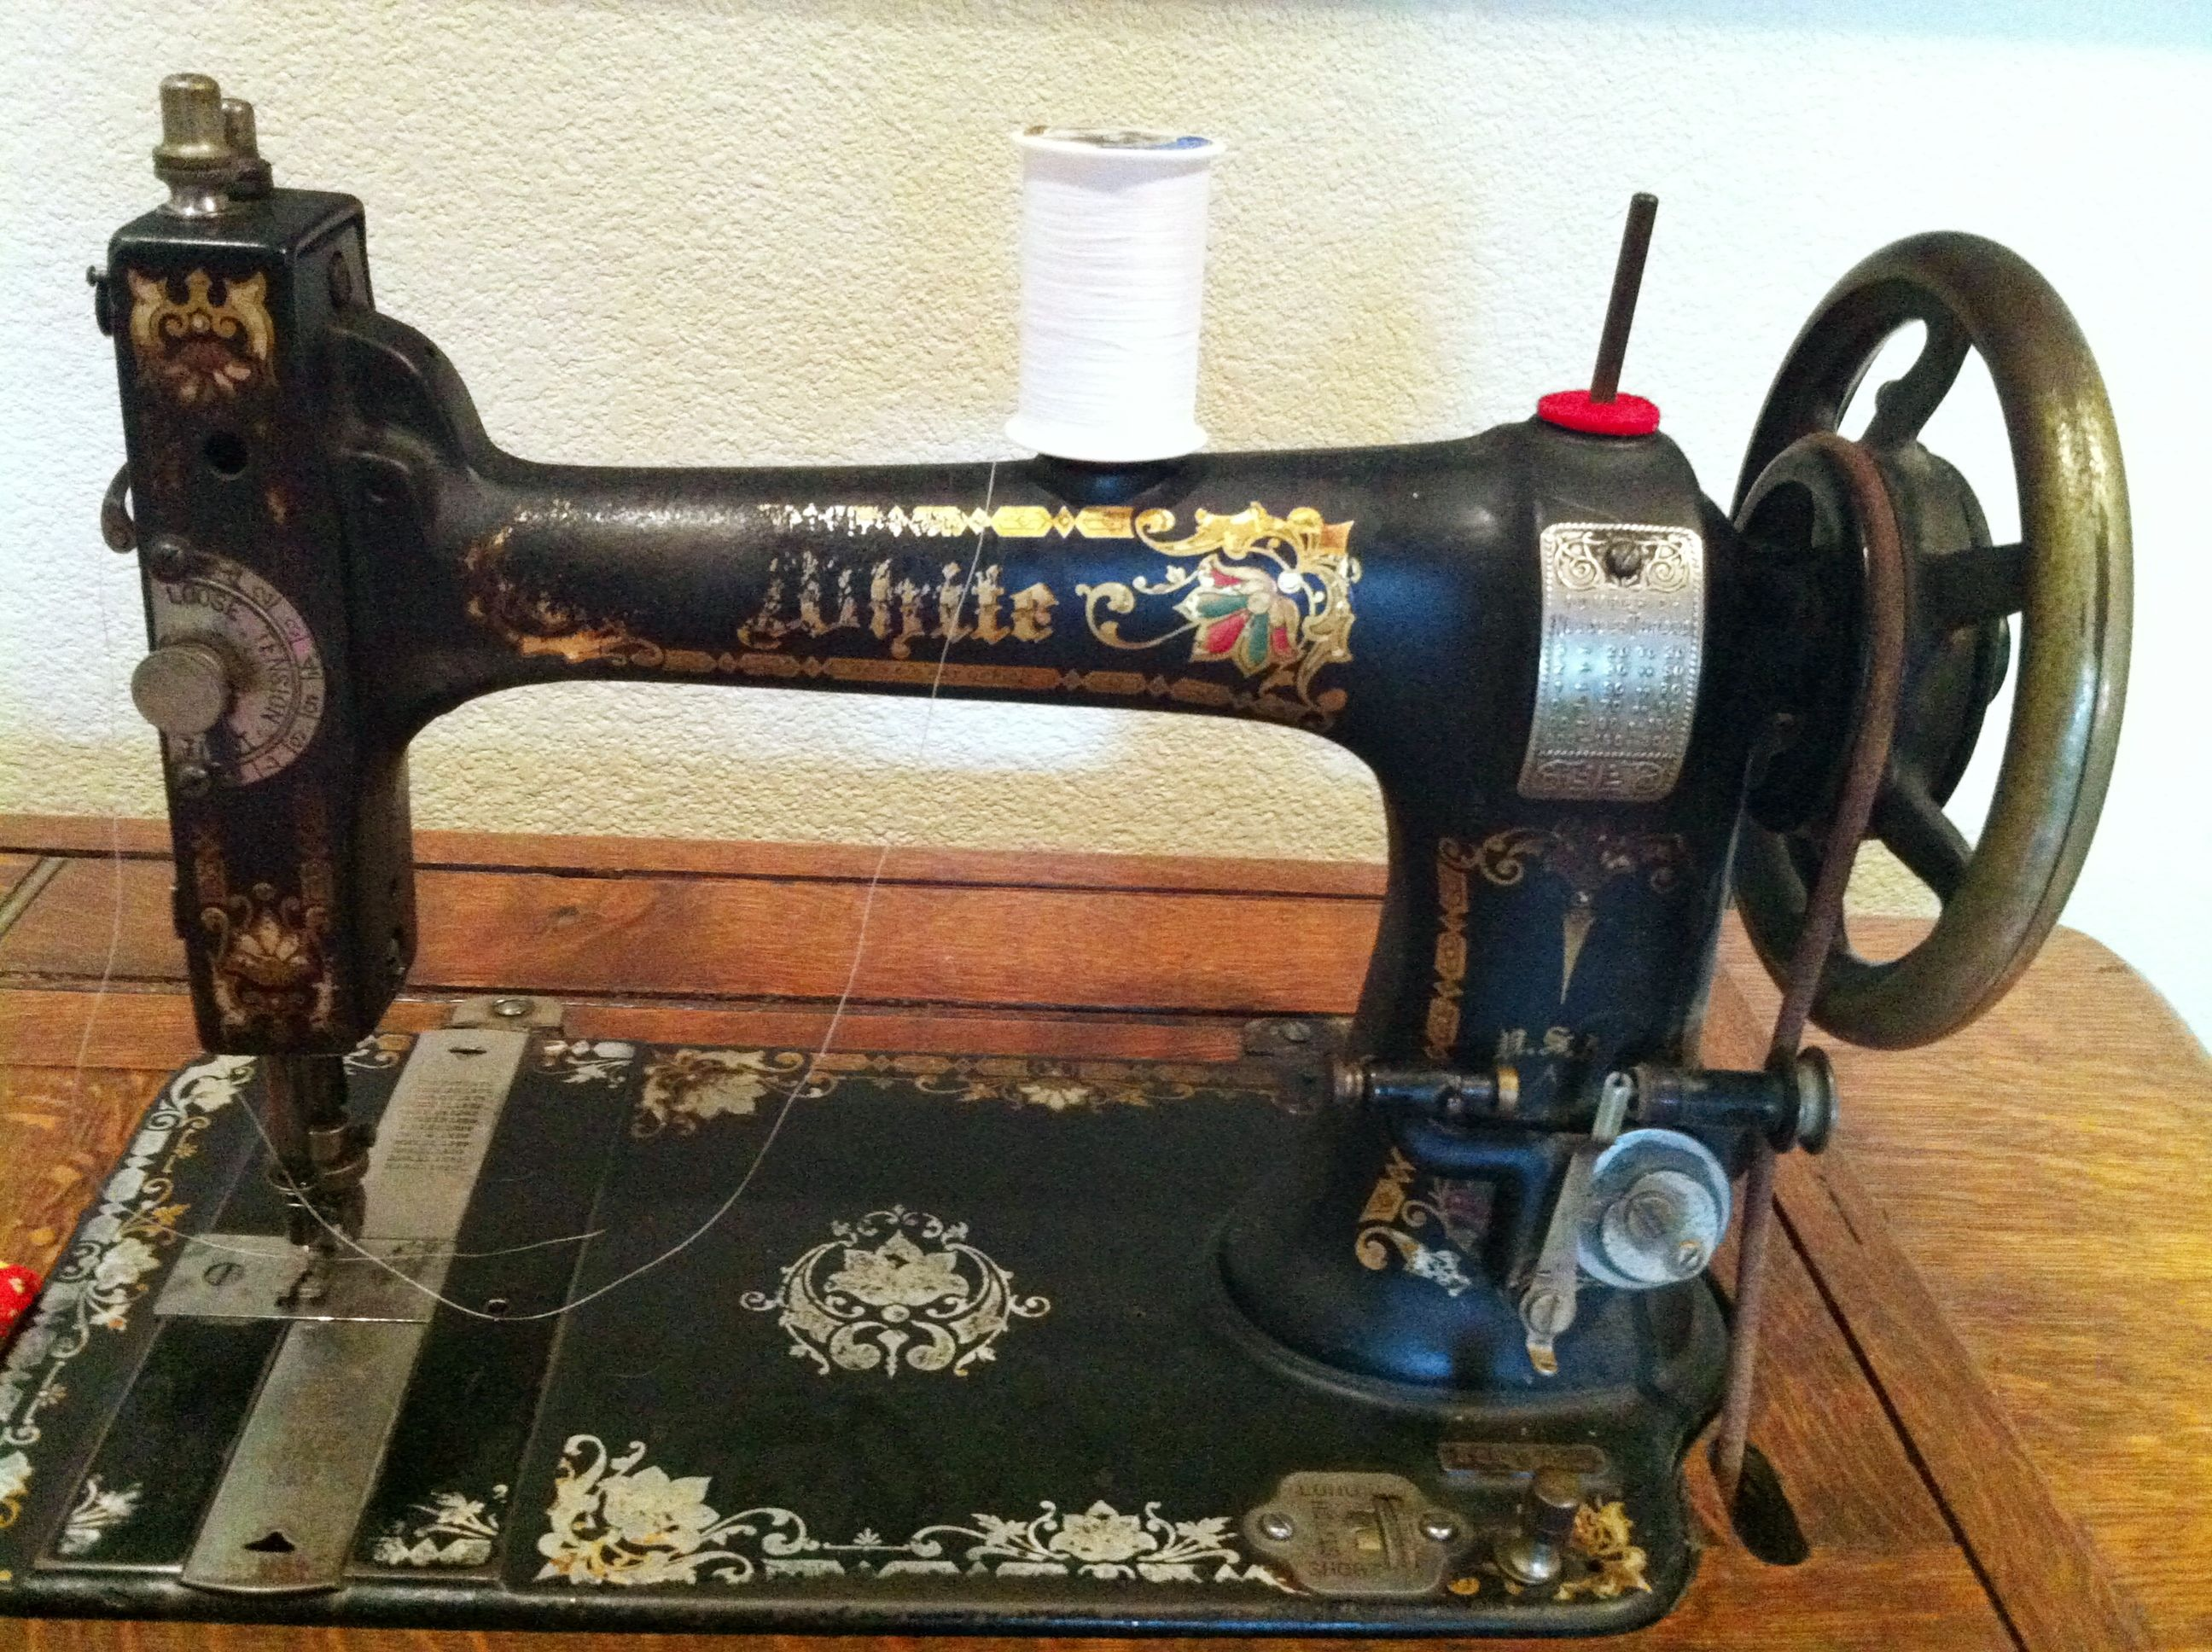 Instruction manual for late 1800's White treadle machine